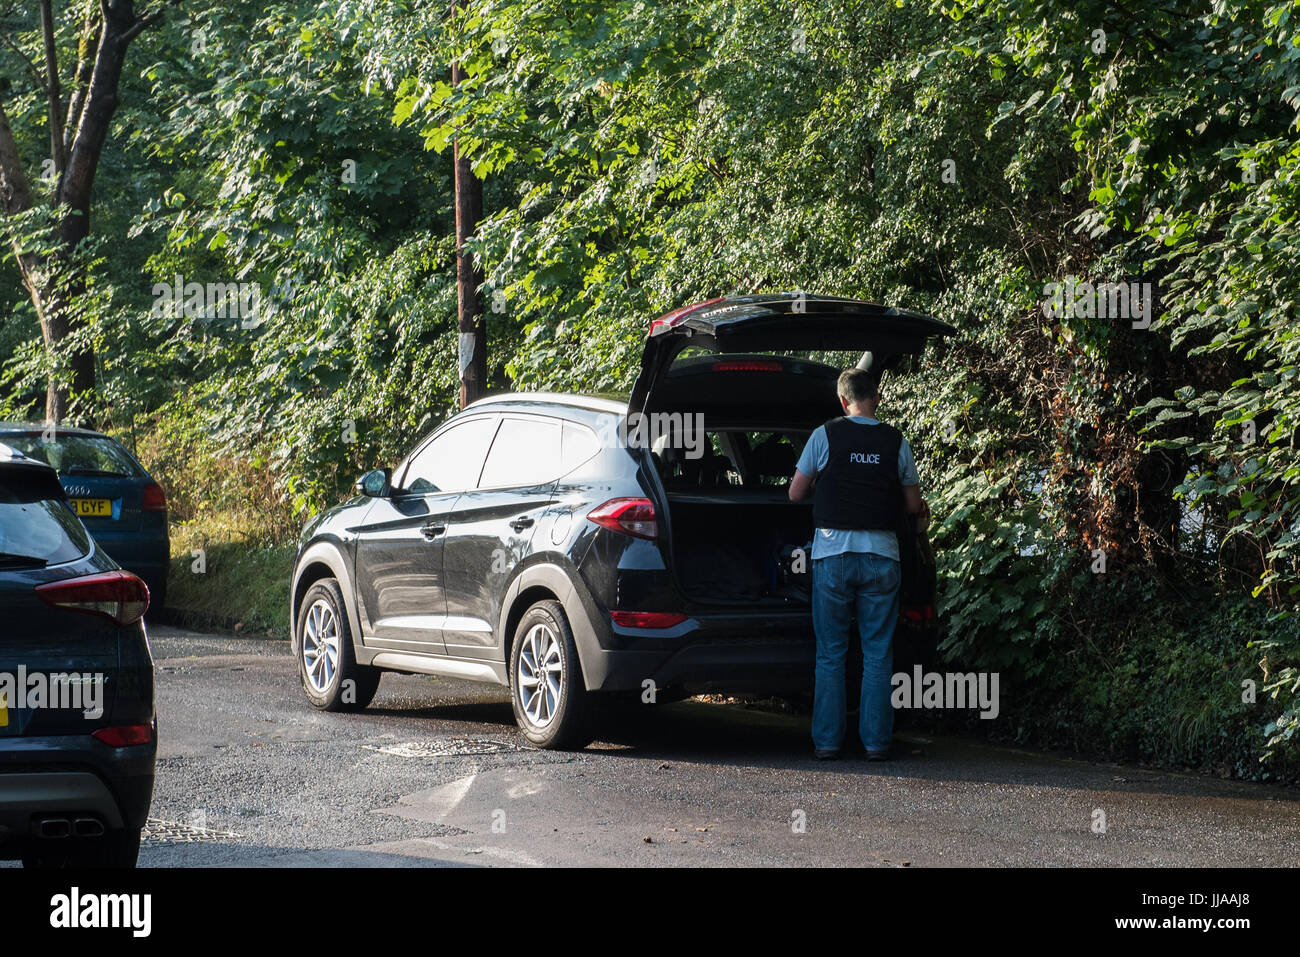 High Wycombe, United Kingdom. 19th July 2017. Police outside a property in High Wycombe that was raided as part - Stock Image